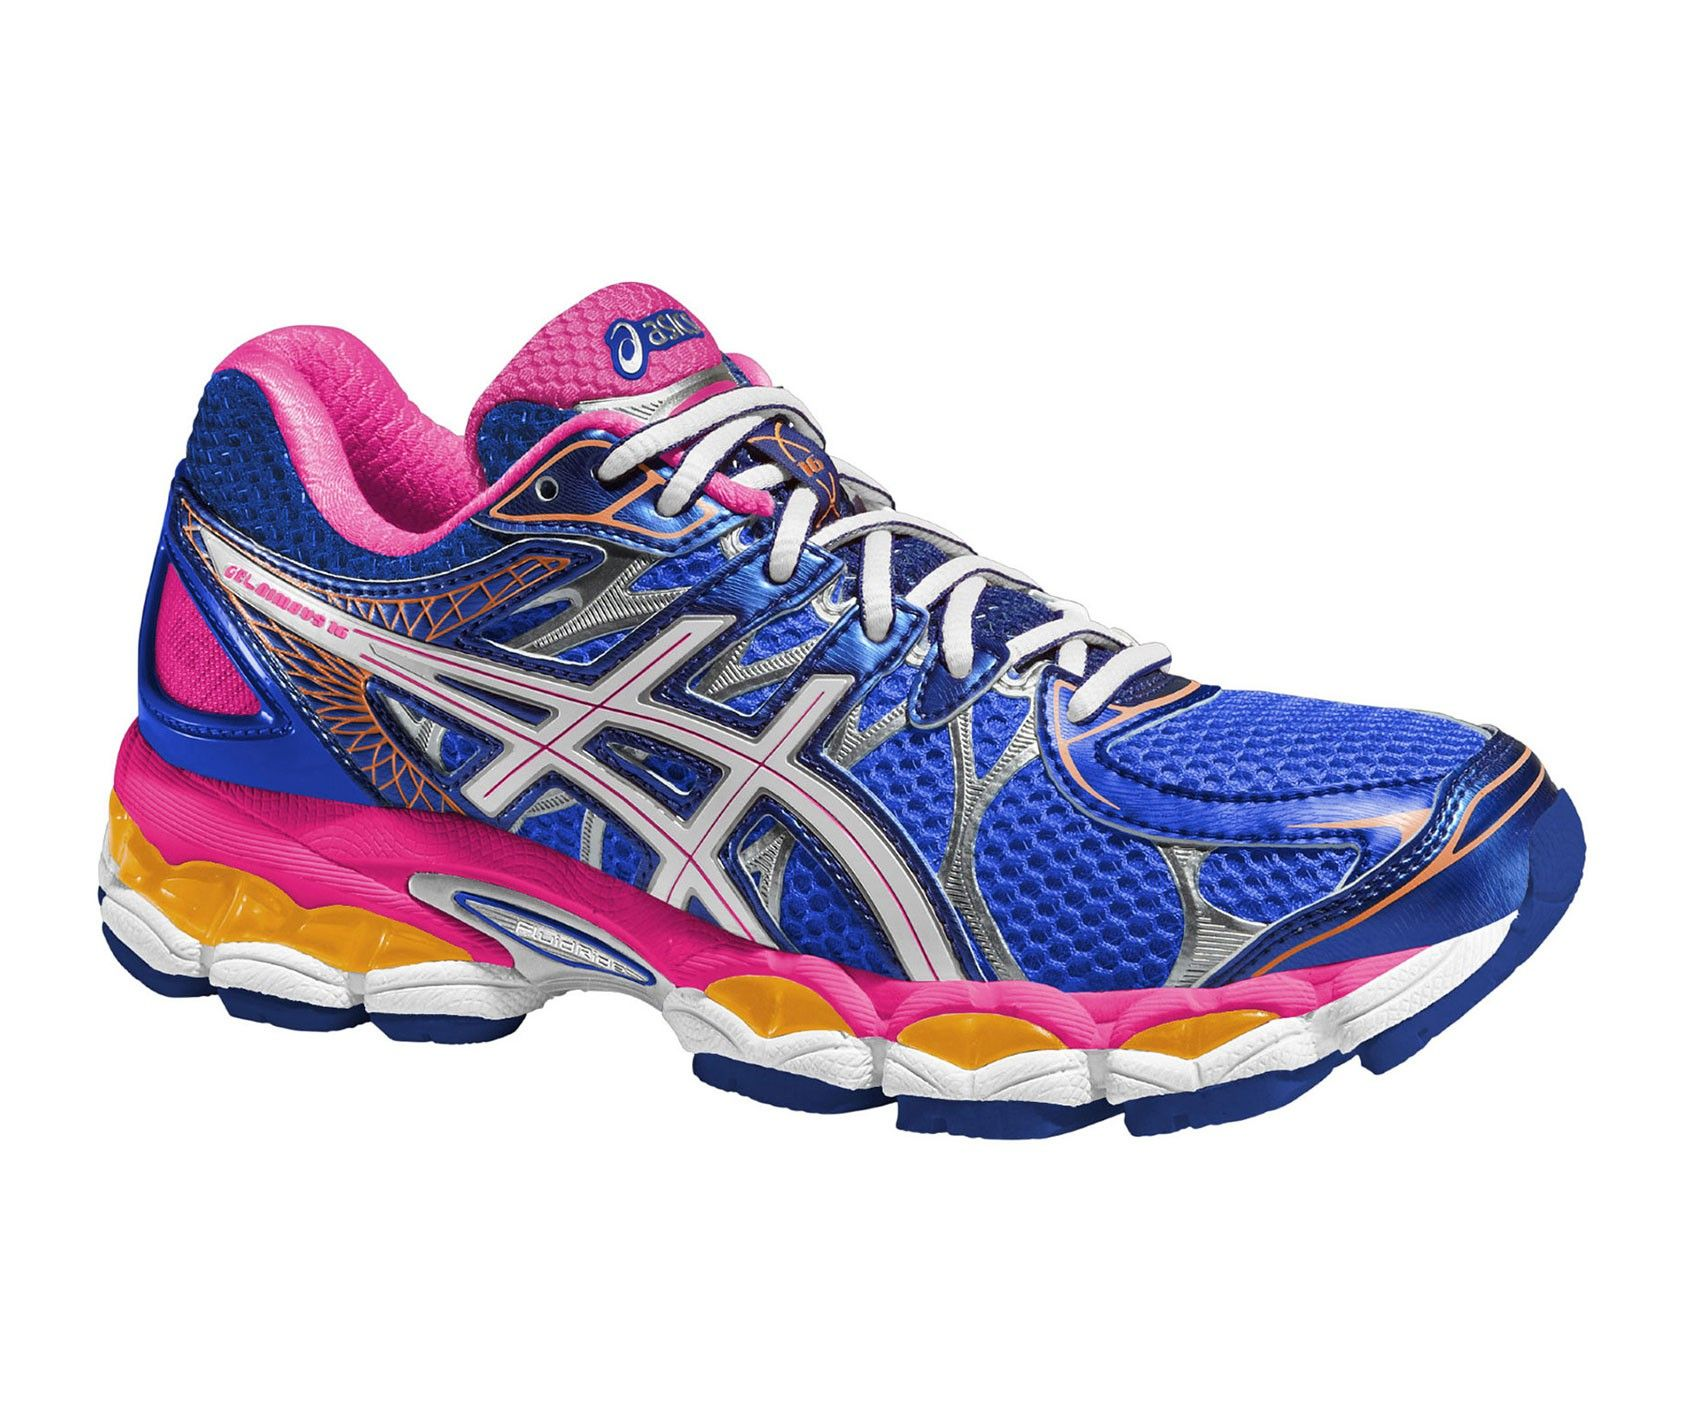 ASICS GEL NIMBUS 16 AZUL/ROSA MUJER · Long Distance Running ShoesRunning ...